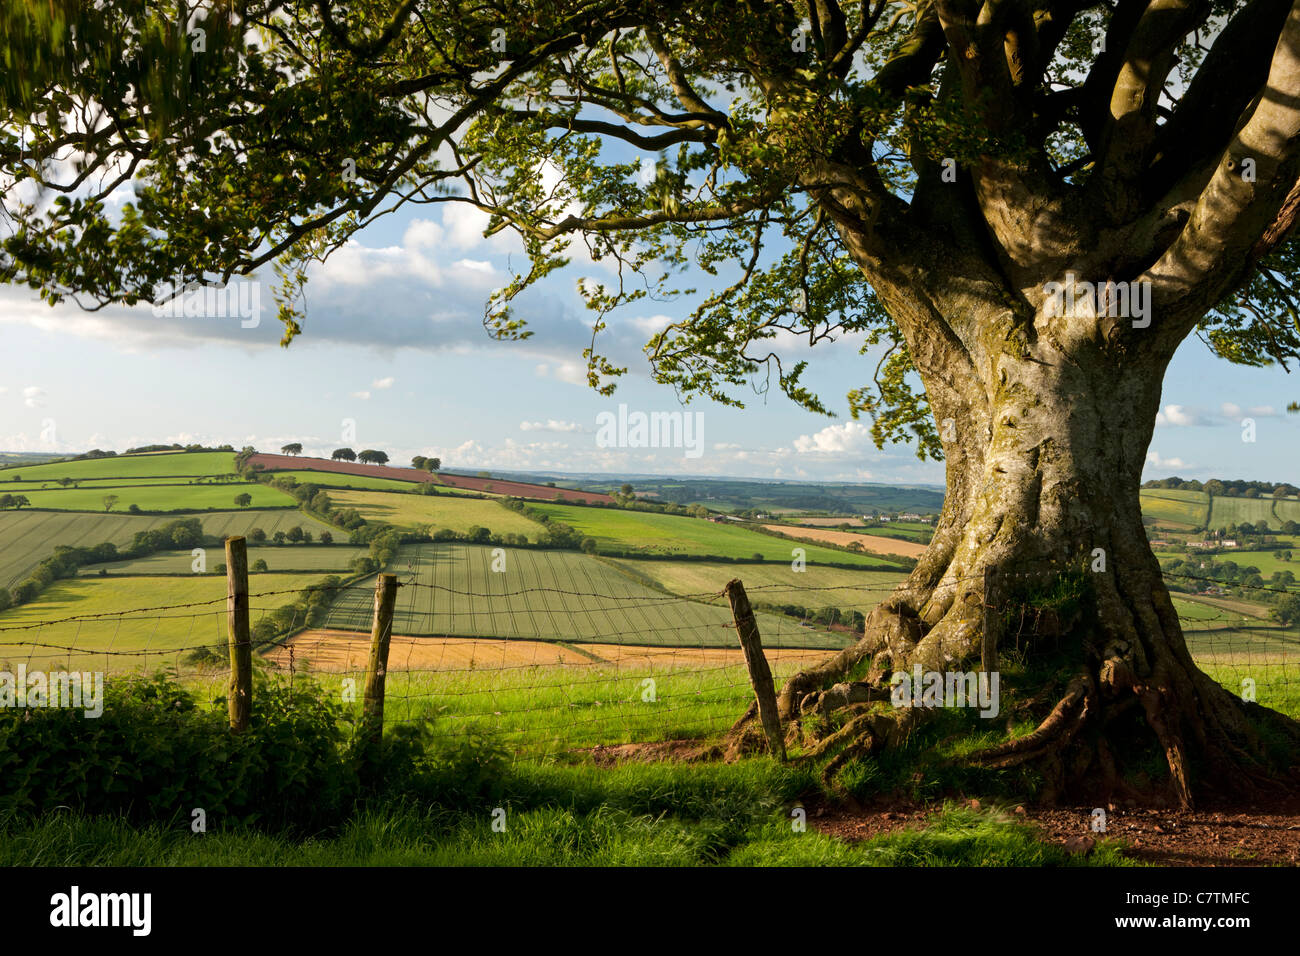 Summer fields in the Devon countryside, Raddon Hills, Devon, England. Summer (June) 2011. - Stock Image